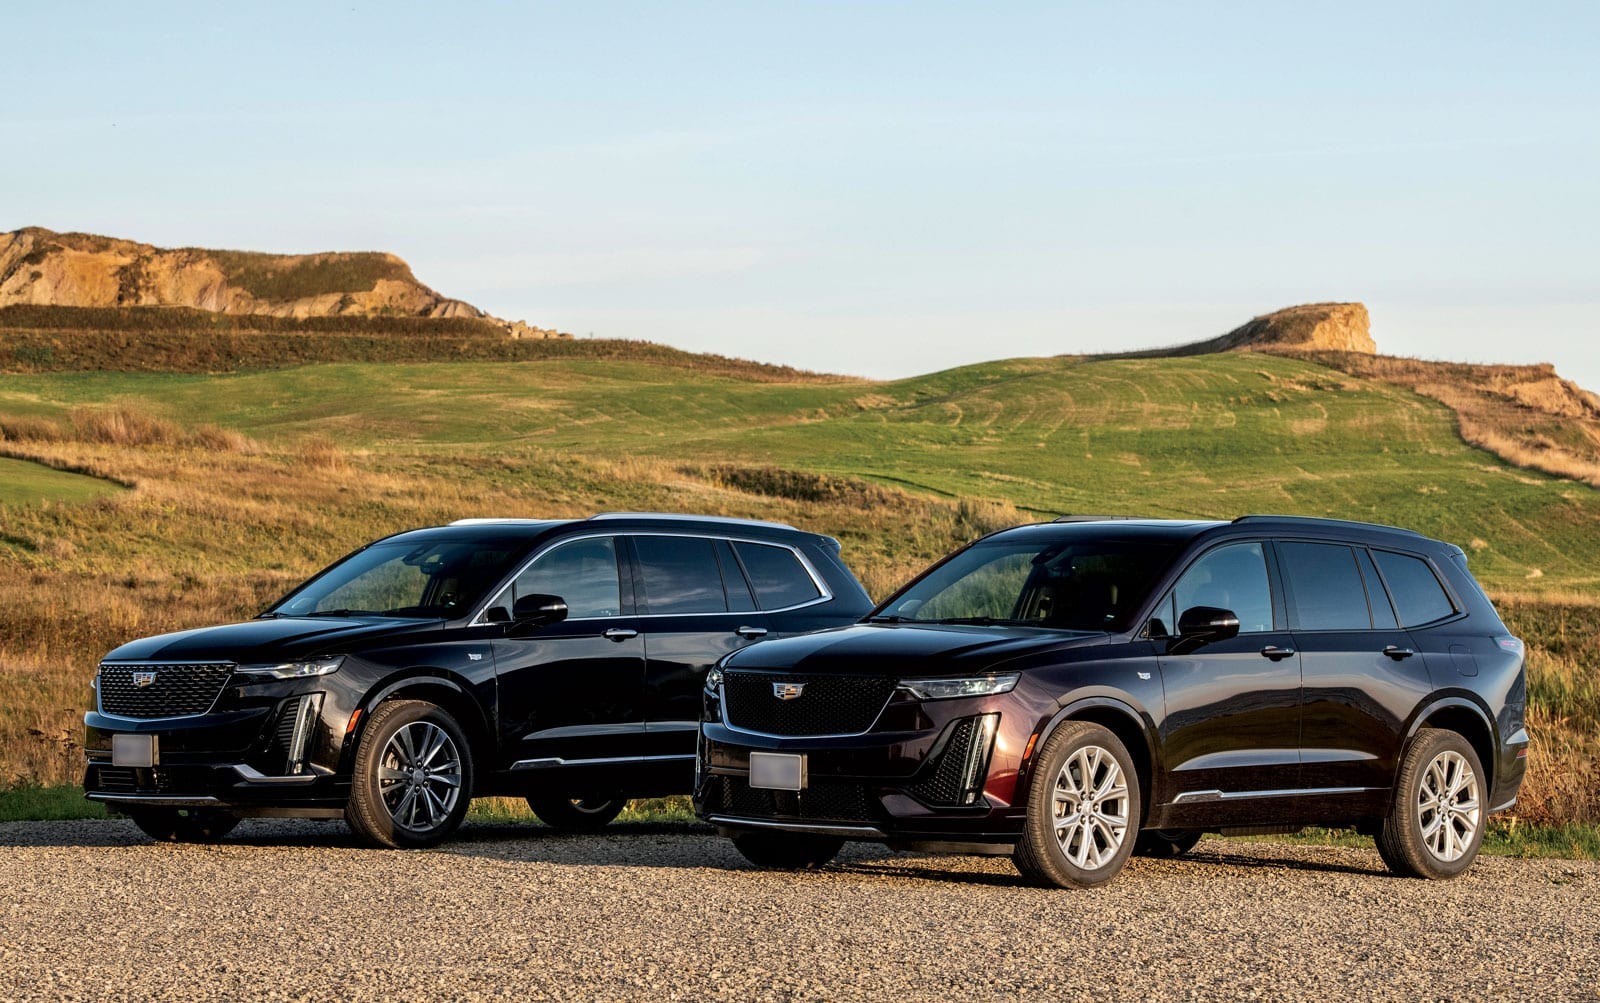 Cadillac XT6: The crossover you didn't know you'd covet